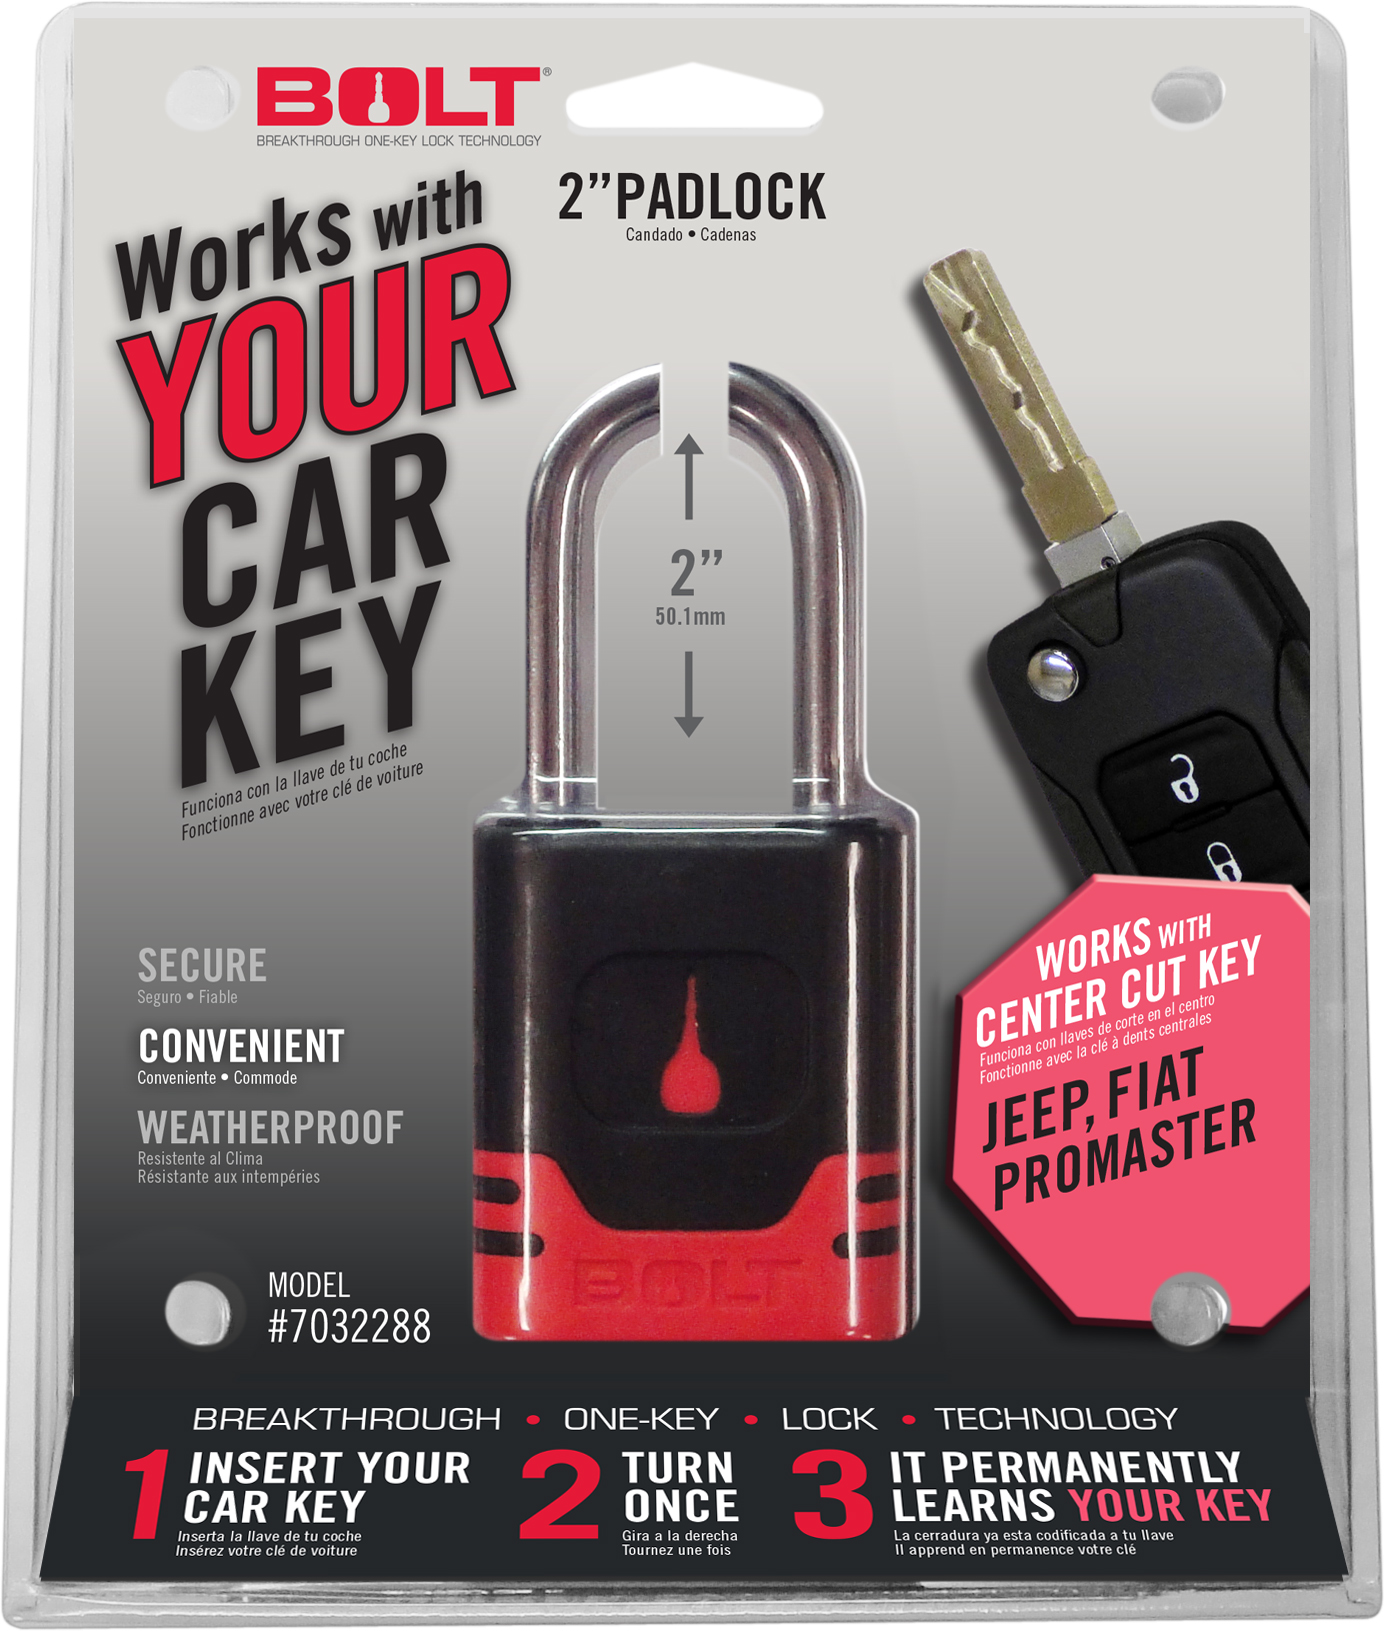 7032288 BOLT Locks/ Strattec Security Padlock Key Type - Uses